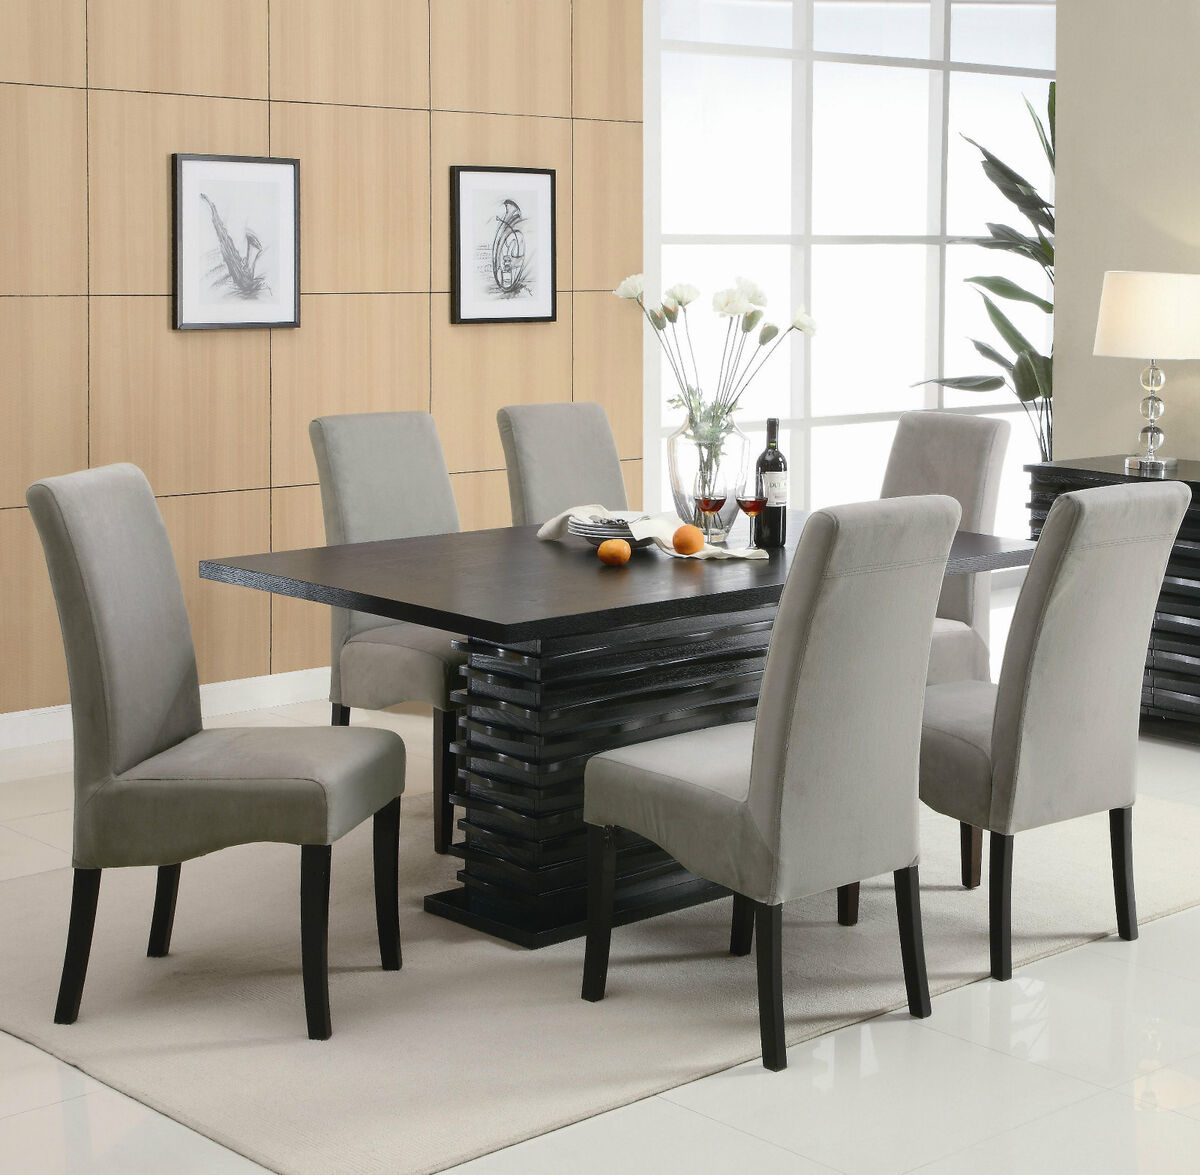 Amazing Contemporary Dining Table Sets 1200 x 1175 · 161 kB · jpeg